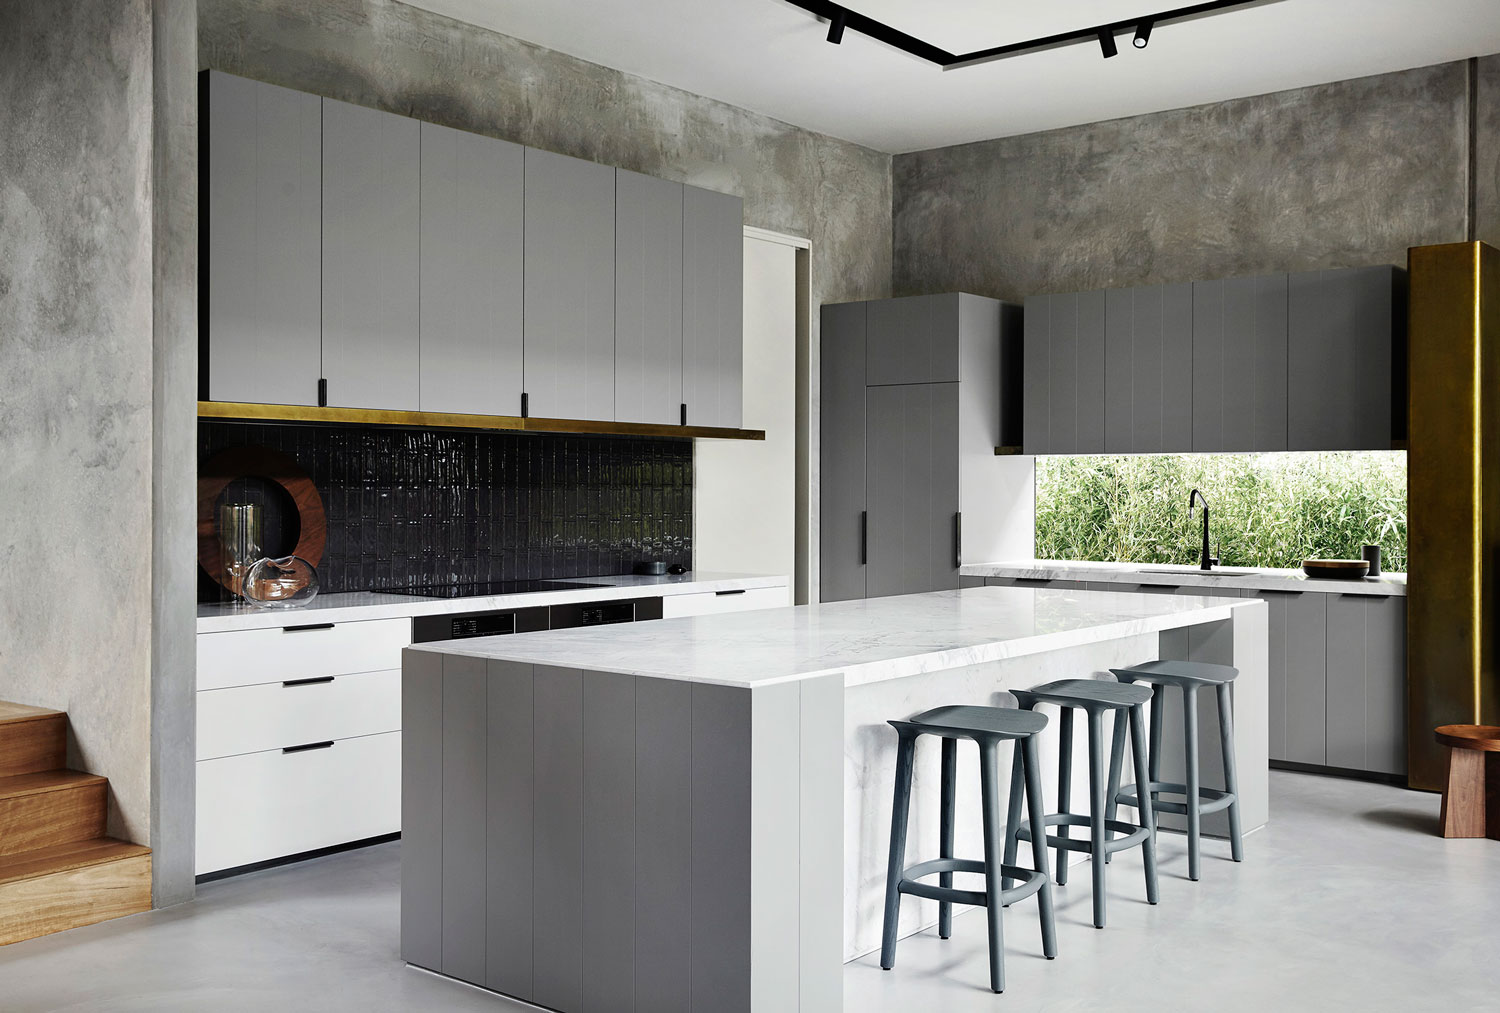 Balwyn-House-in-Melbourne-Collingwood-by-Fiona-Lynch-Design-Office-Yellowtrace-05